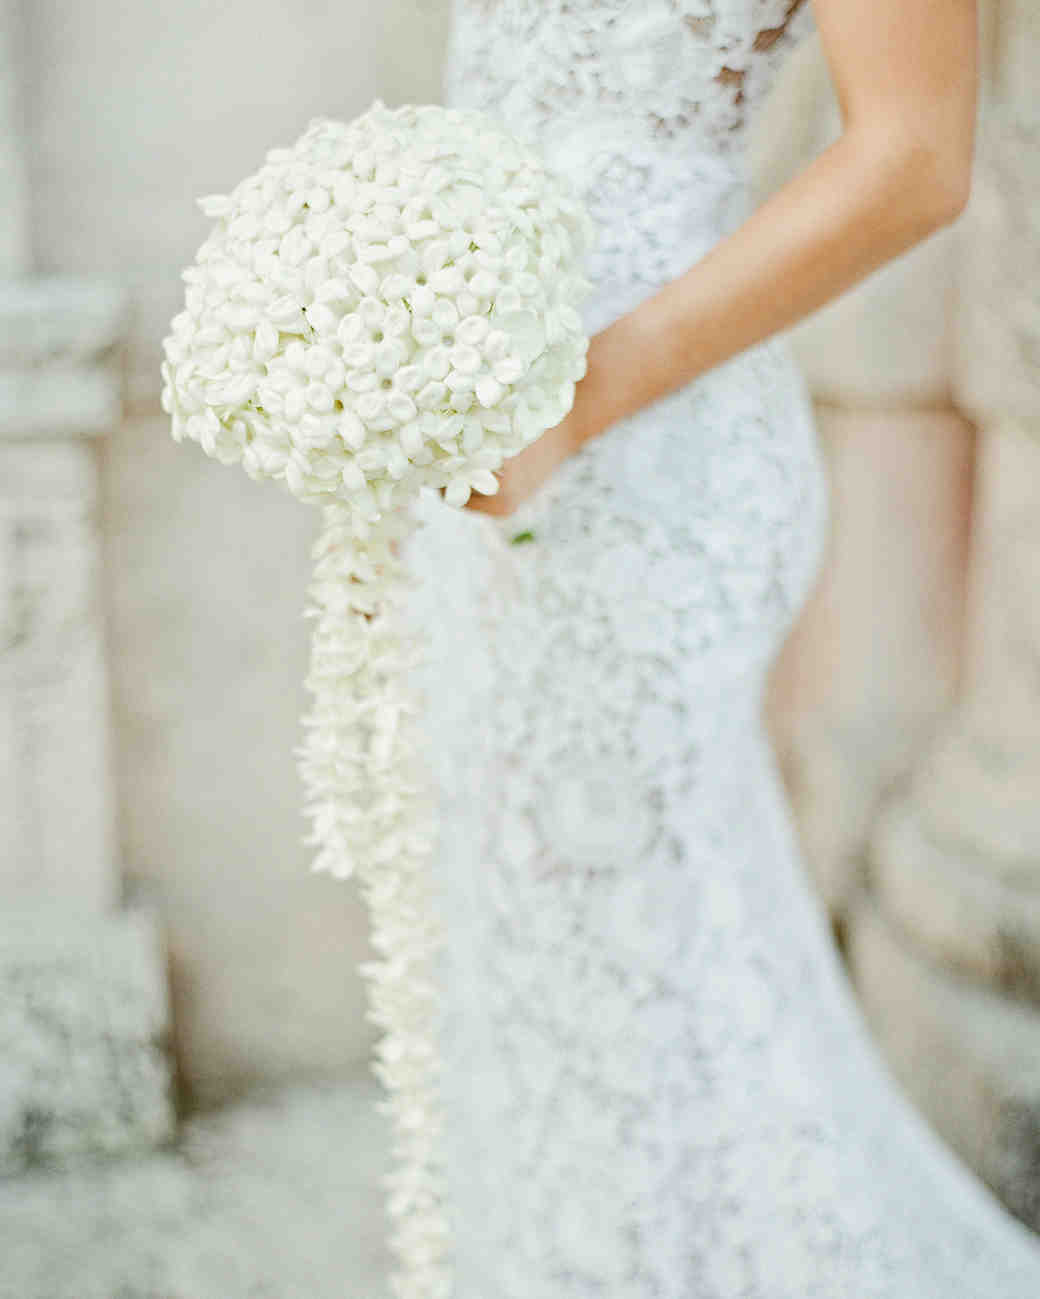 natalie jamey wedding bouquet